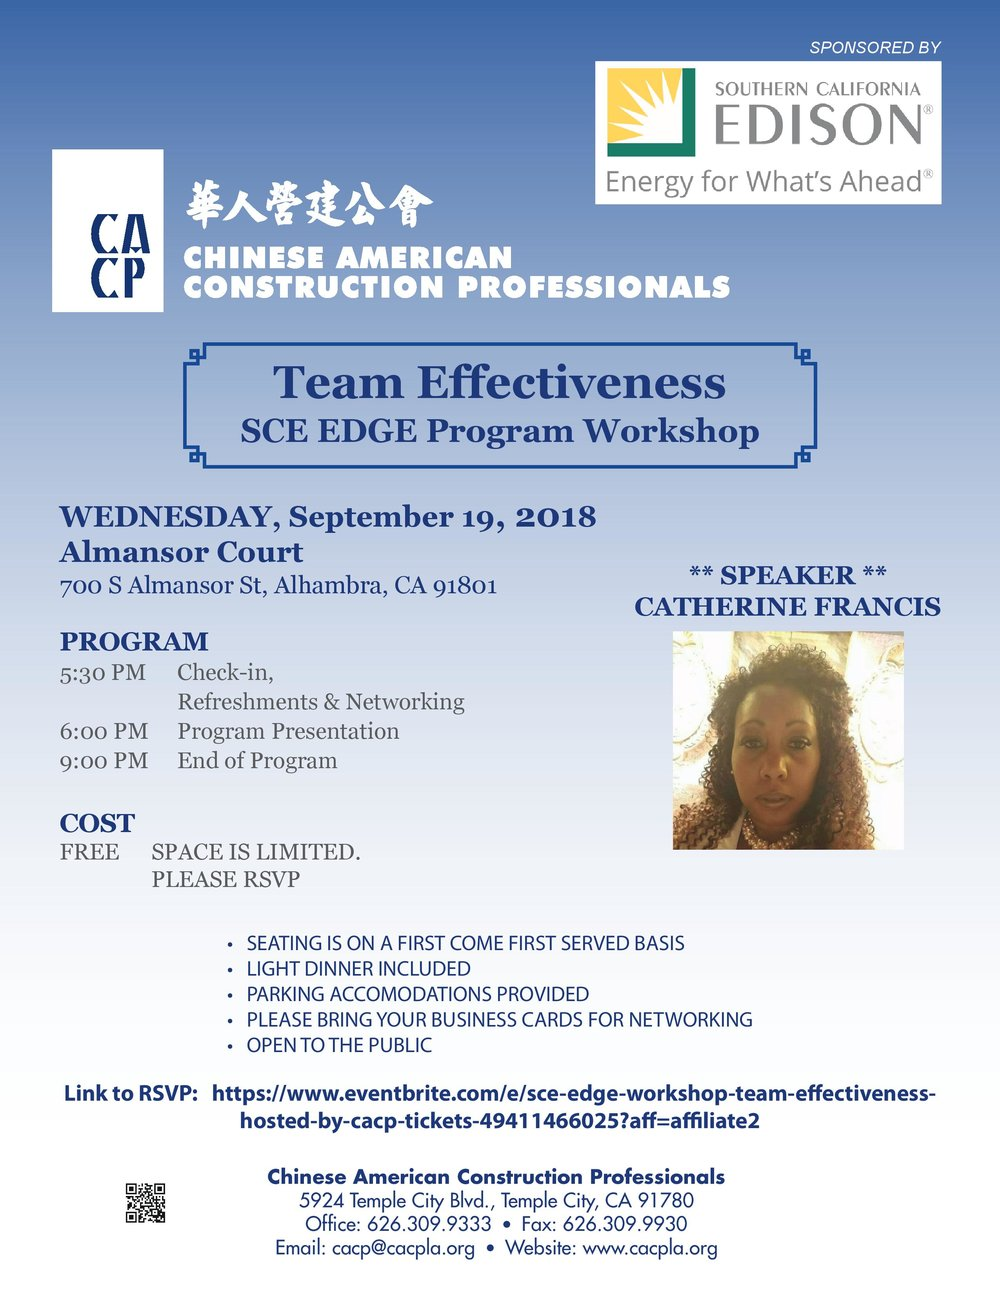 CACP Team Effectiveness sce edge program workshop - September 19th, 2018